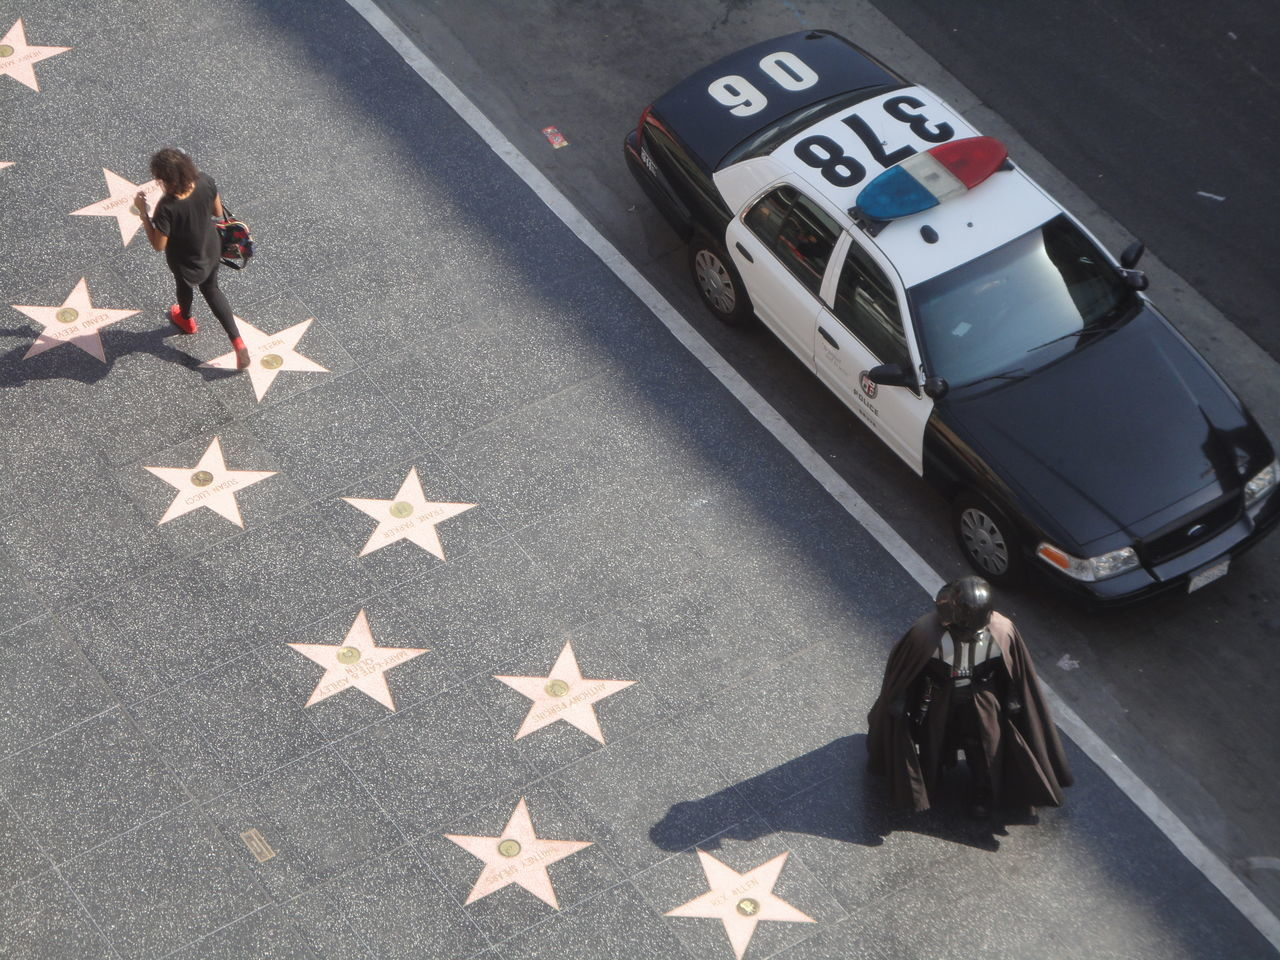 She didn't join the dark side Absurd California Dark Side Darth Vader Daydream High Angle View Hollywood Hollywood Blvd Observation Police Car Sinister Stars Street Life Supervillain The Street Photographer - 2017 EyeEm Awards Walk Of Fame EyeEmNewHere